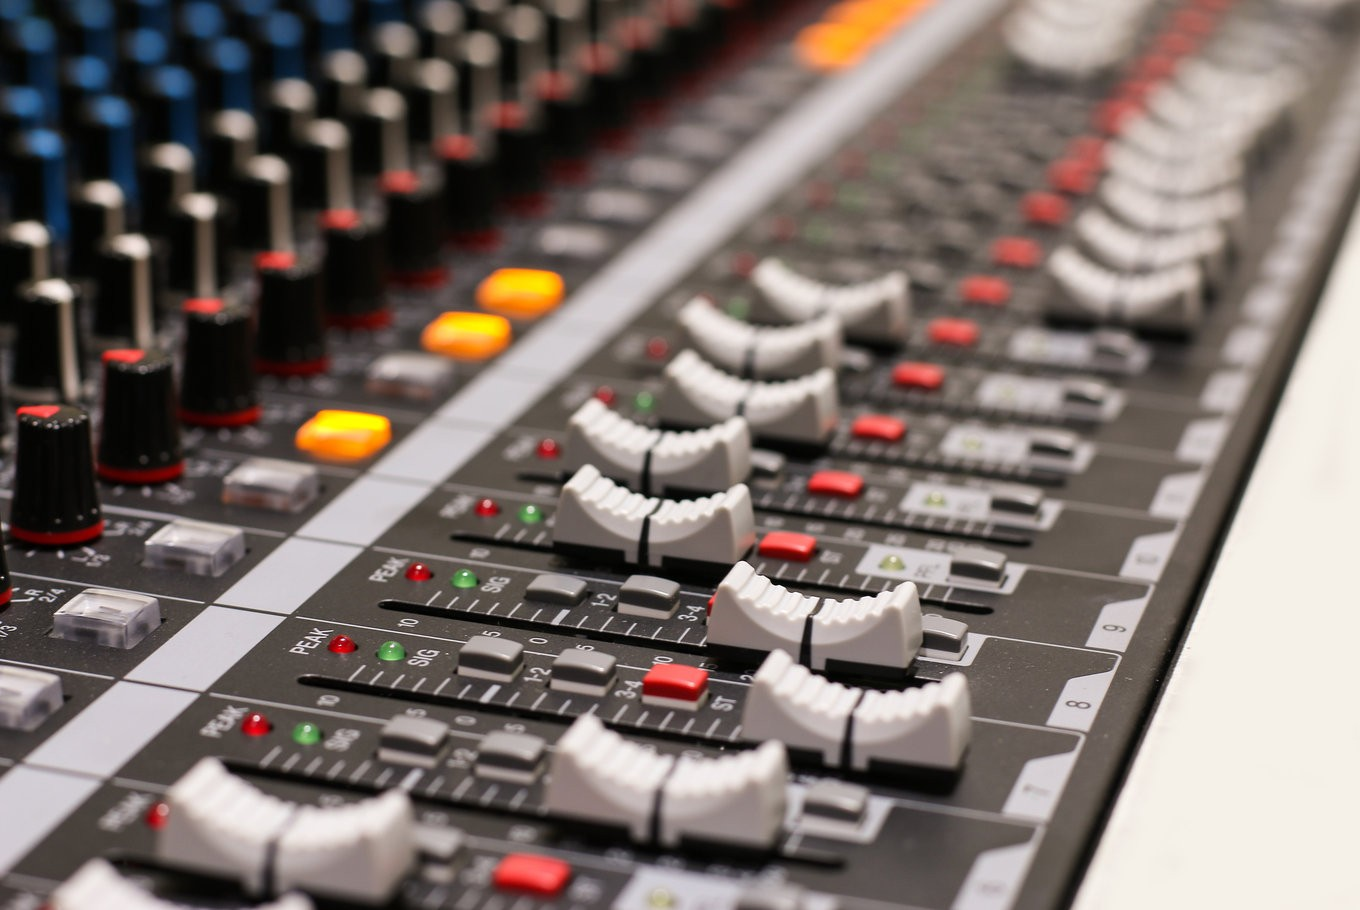 Broadcasting commission bans 'immoral' songs from radio, TV